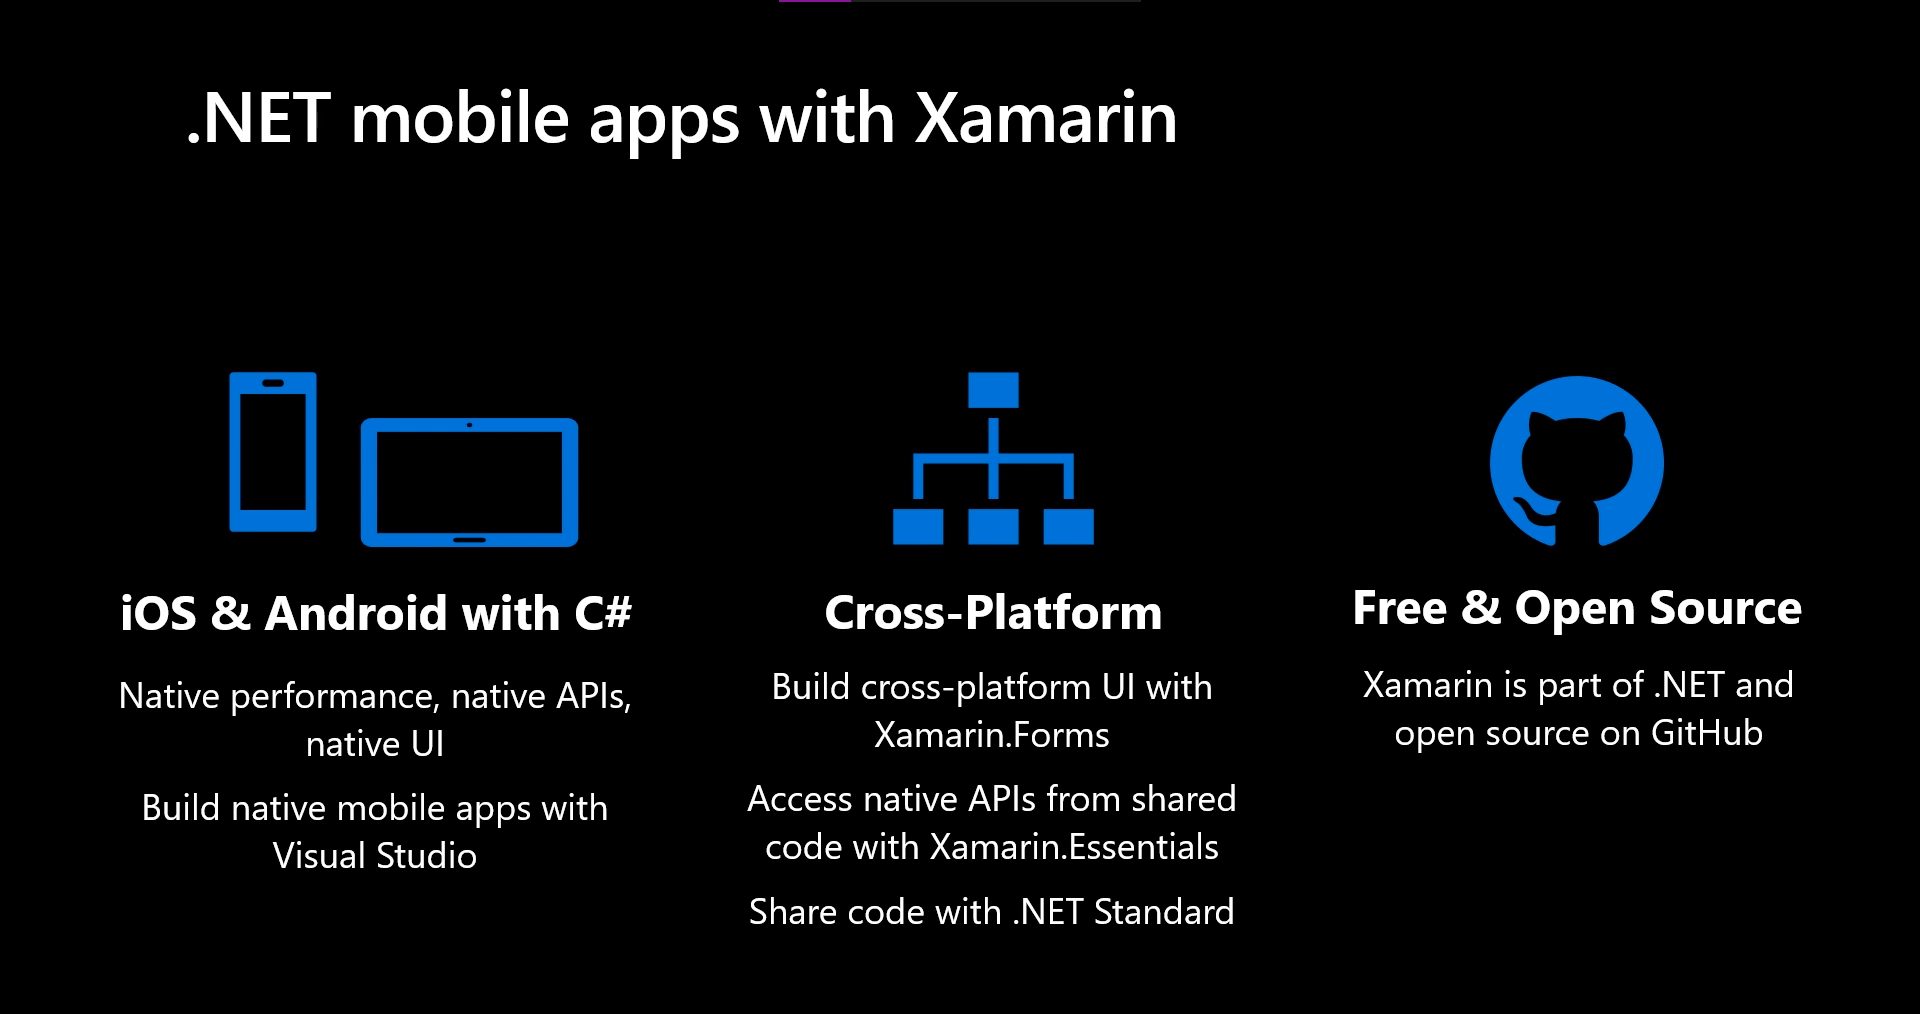 .NET Mobile Apps with Xamarin